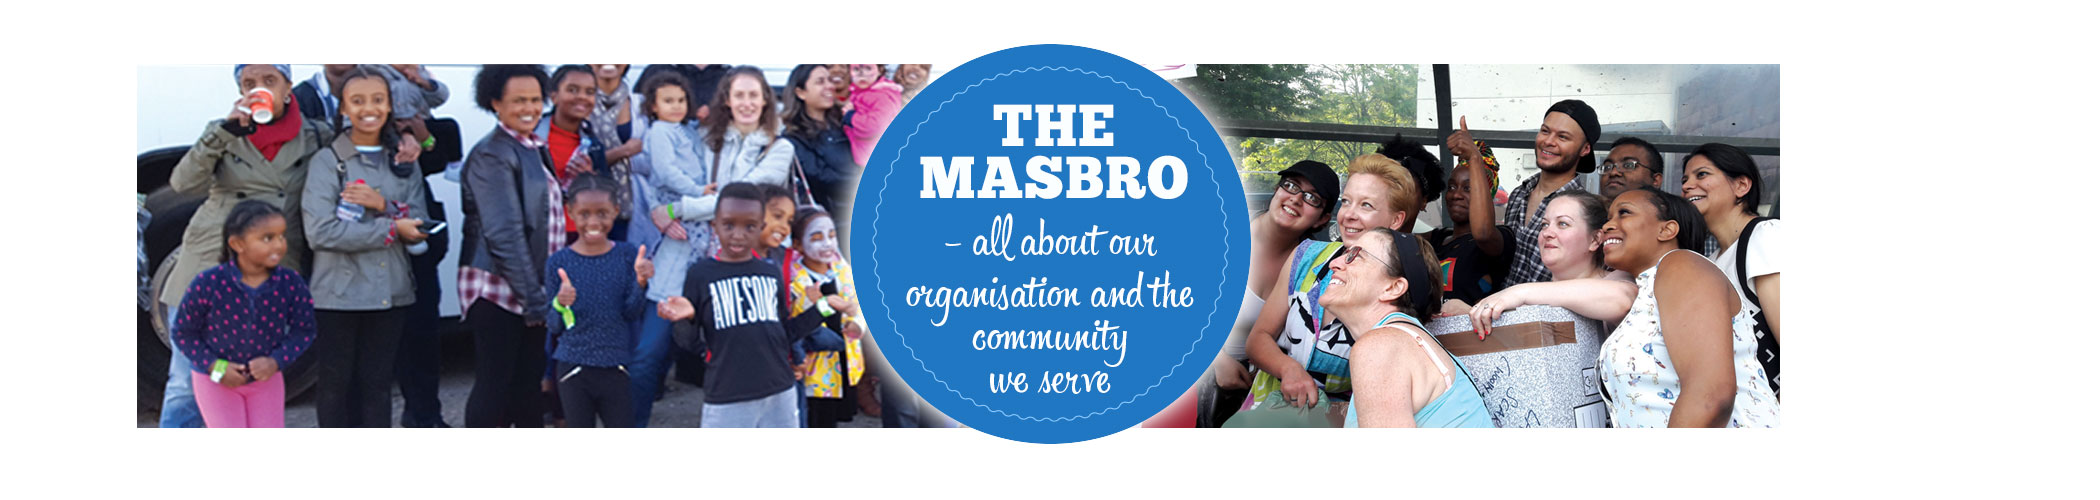 Masbro About Us page iphone banner